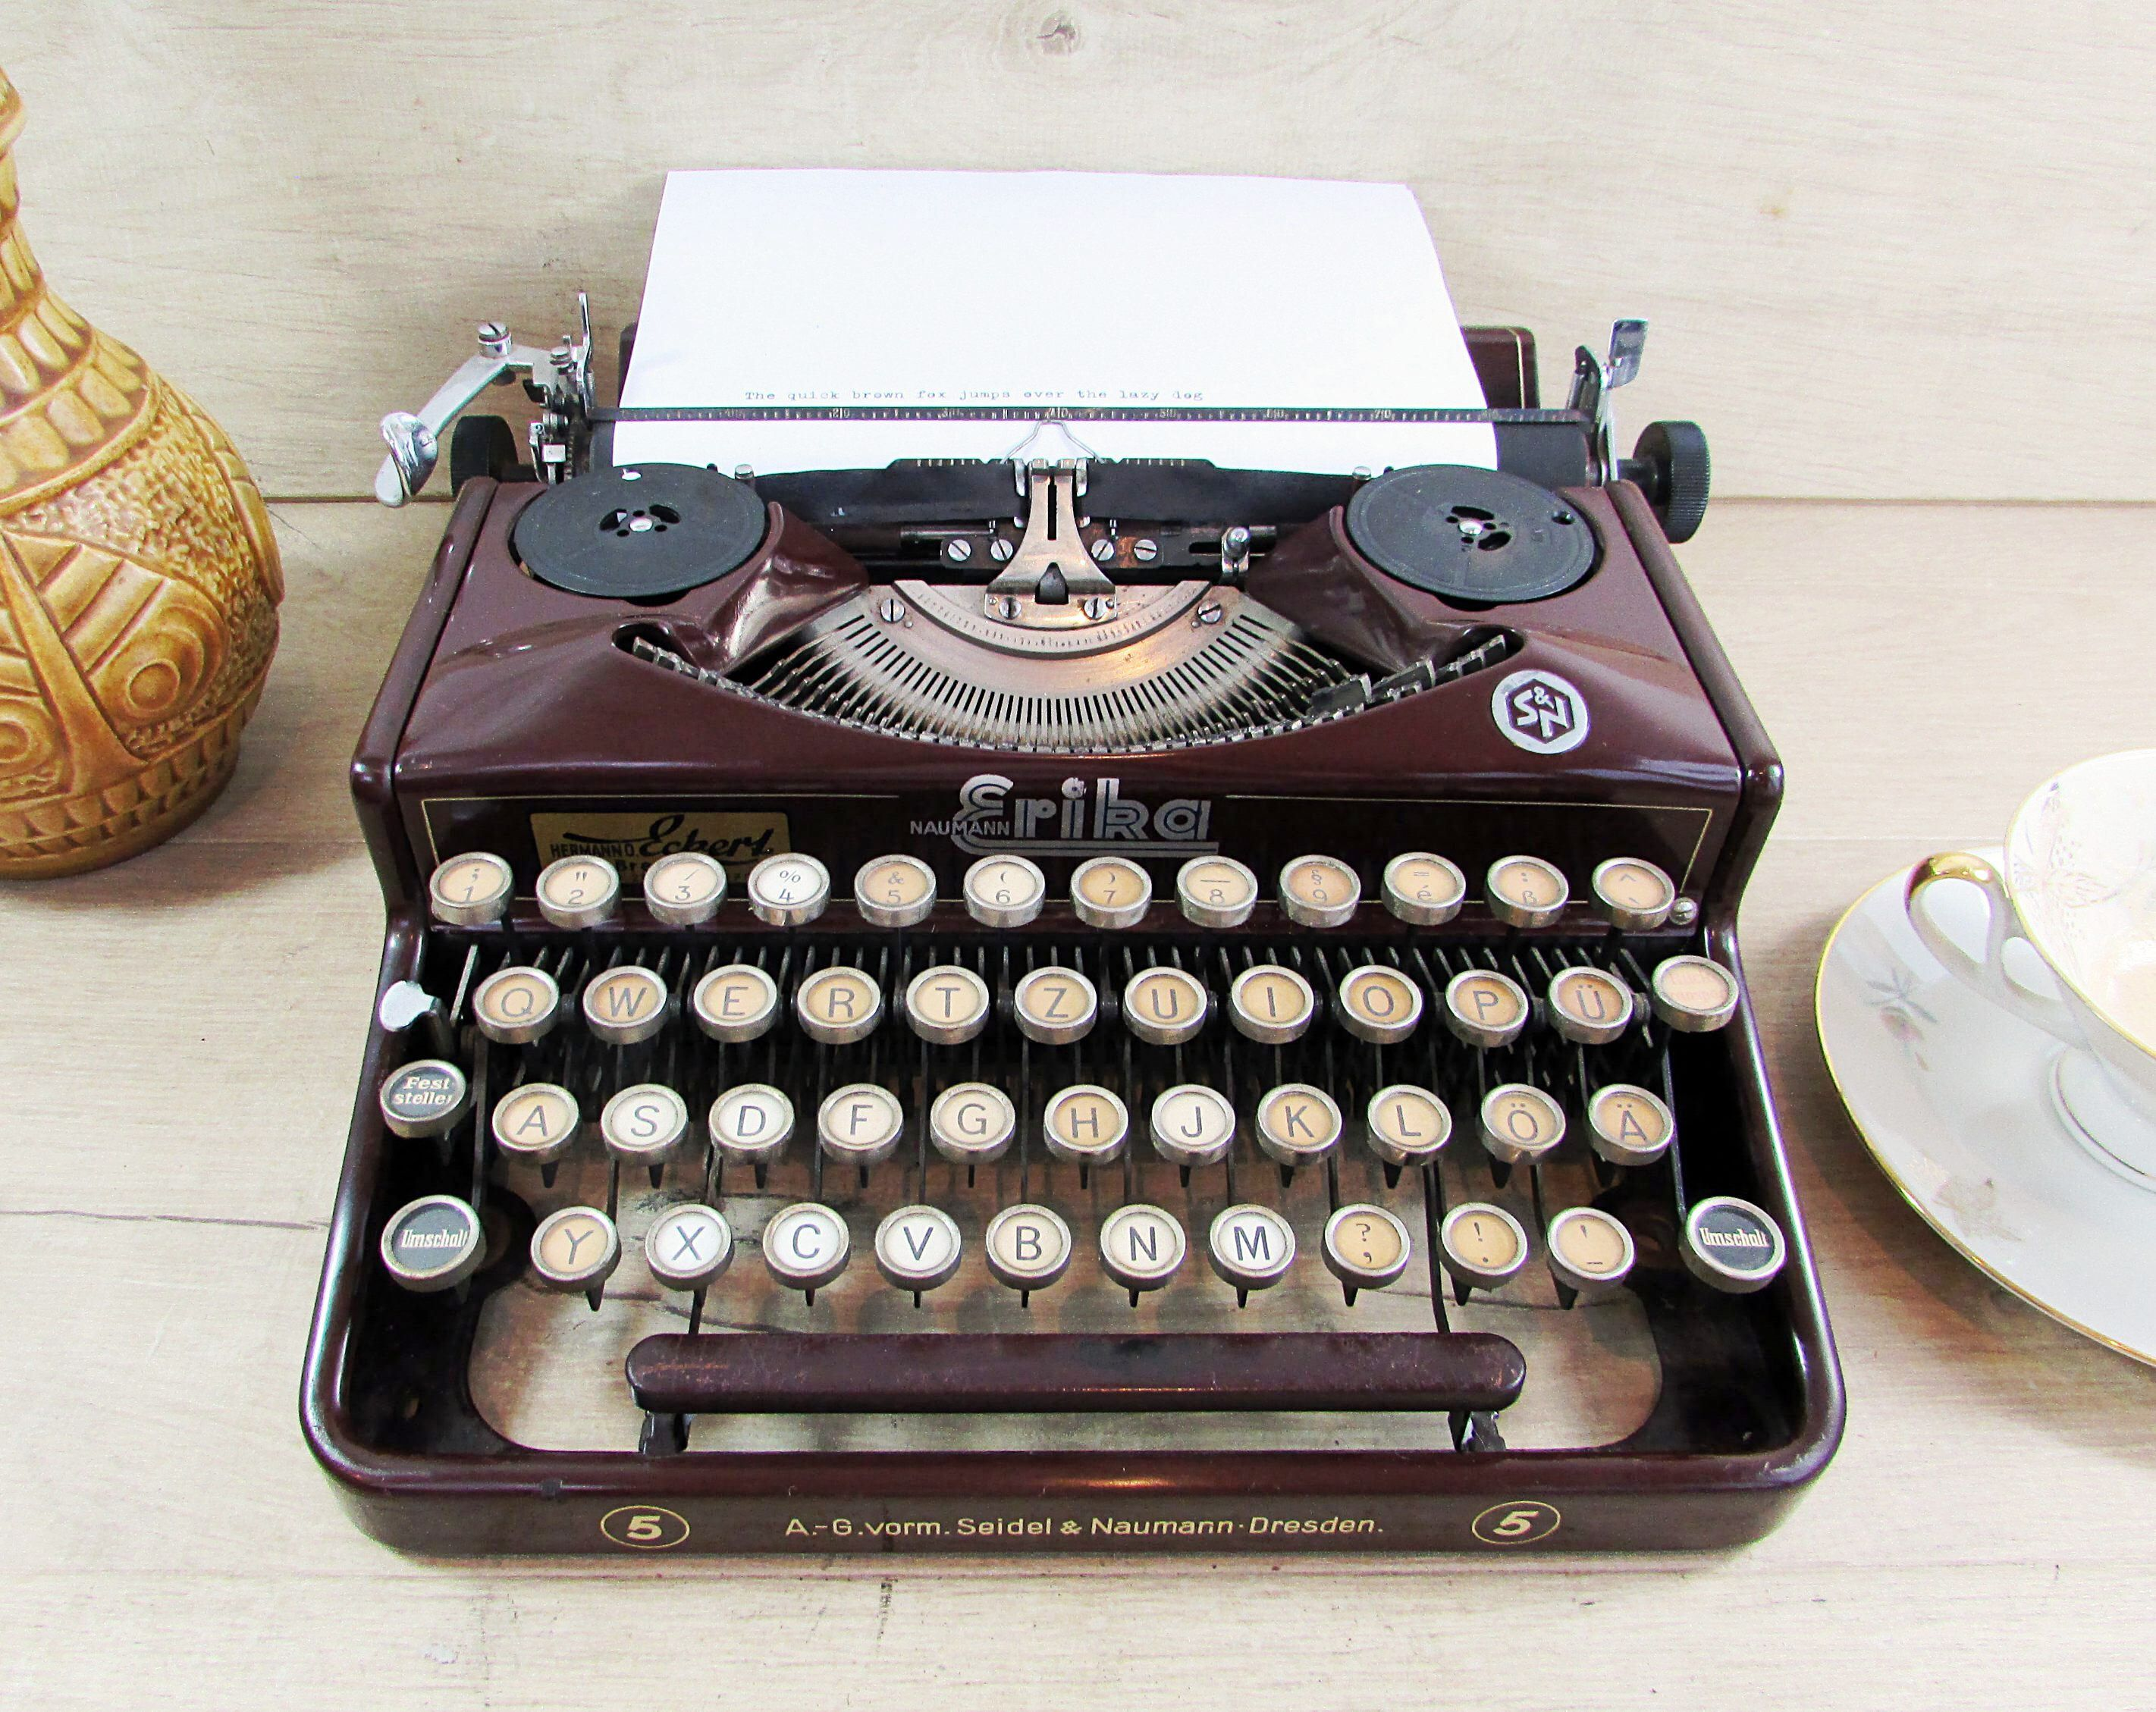 Working typewriter for sale